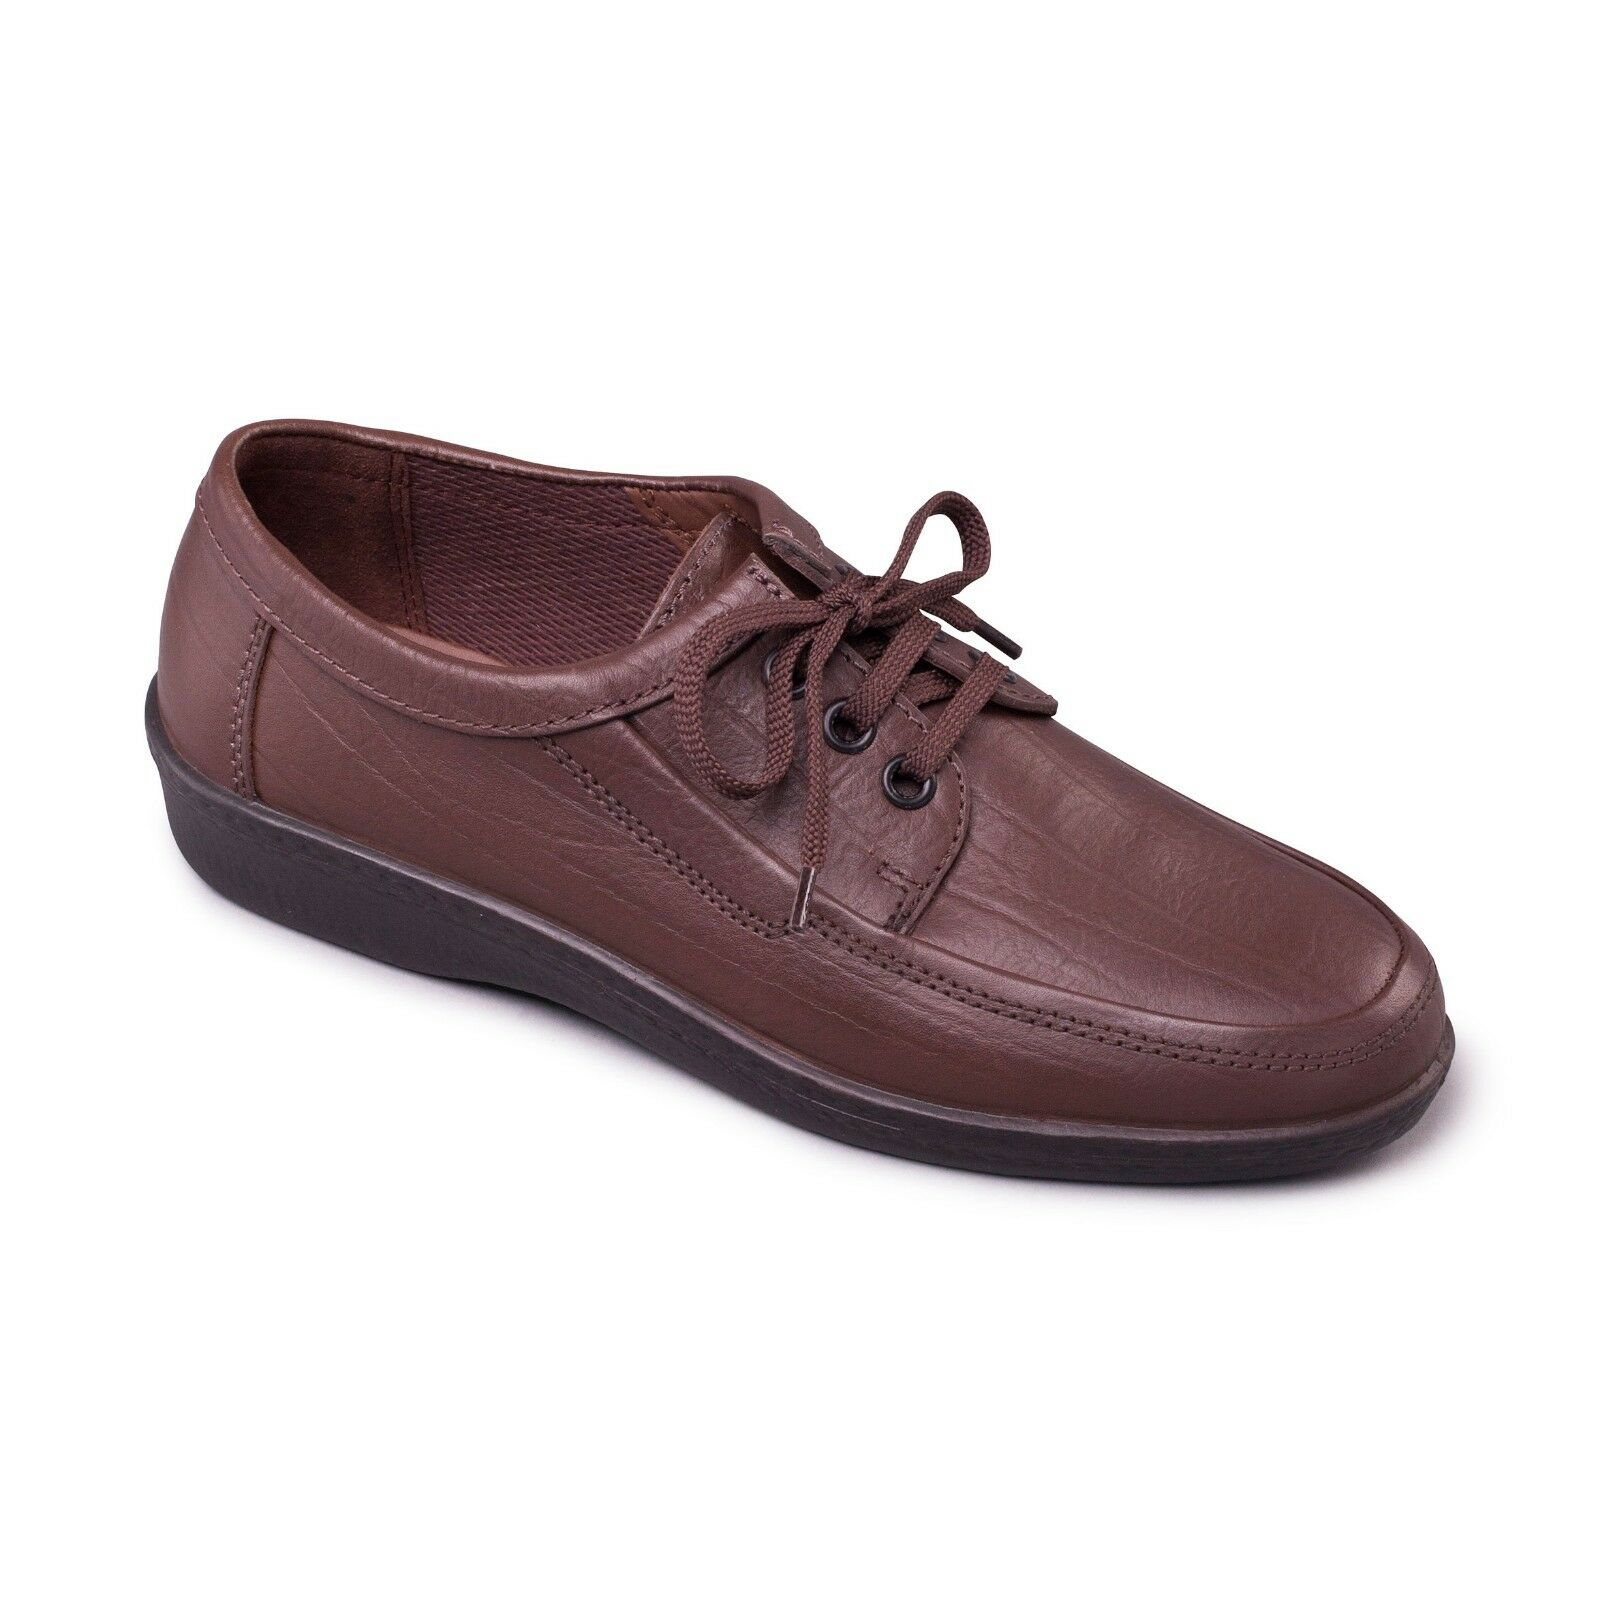 Padders Rebel Hombre Hombre Hombre Soft Leather 3 Eyelet Lace Up Tie zapatos 1a5542